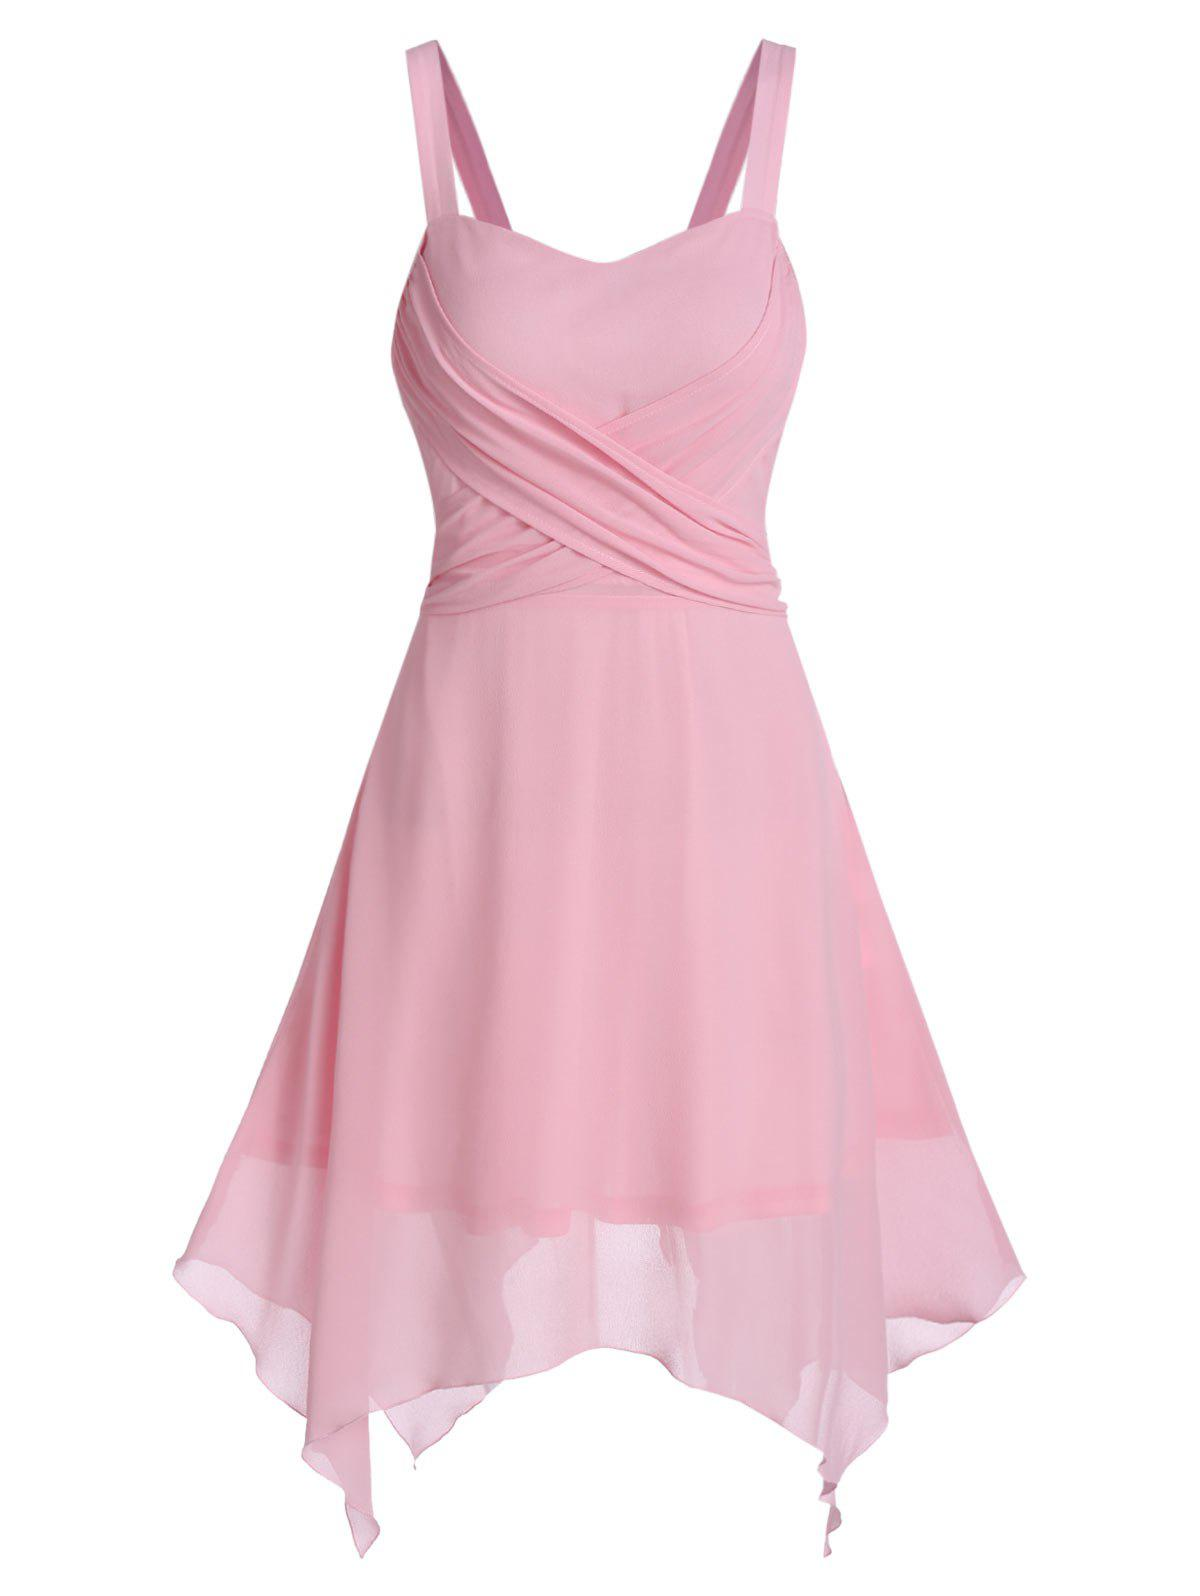 Solid Crisscross Asymmetrical Chiffon Dress - PIG PINK XL